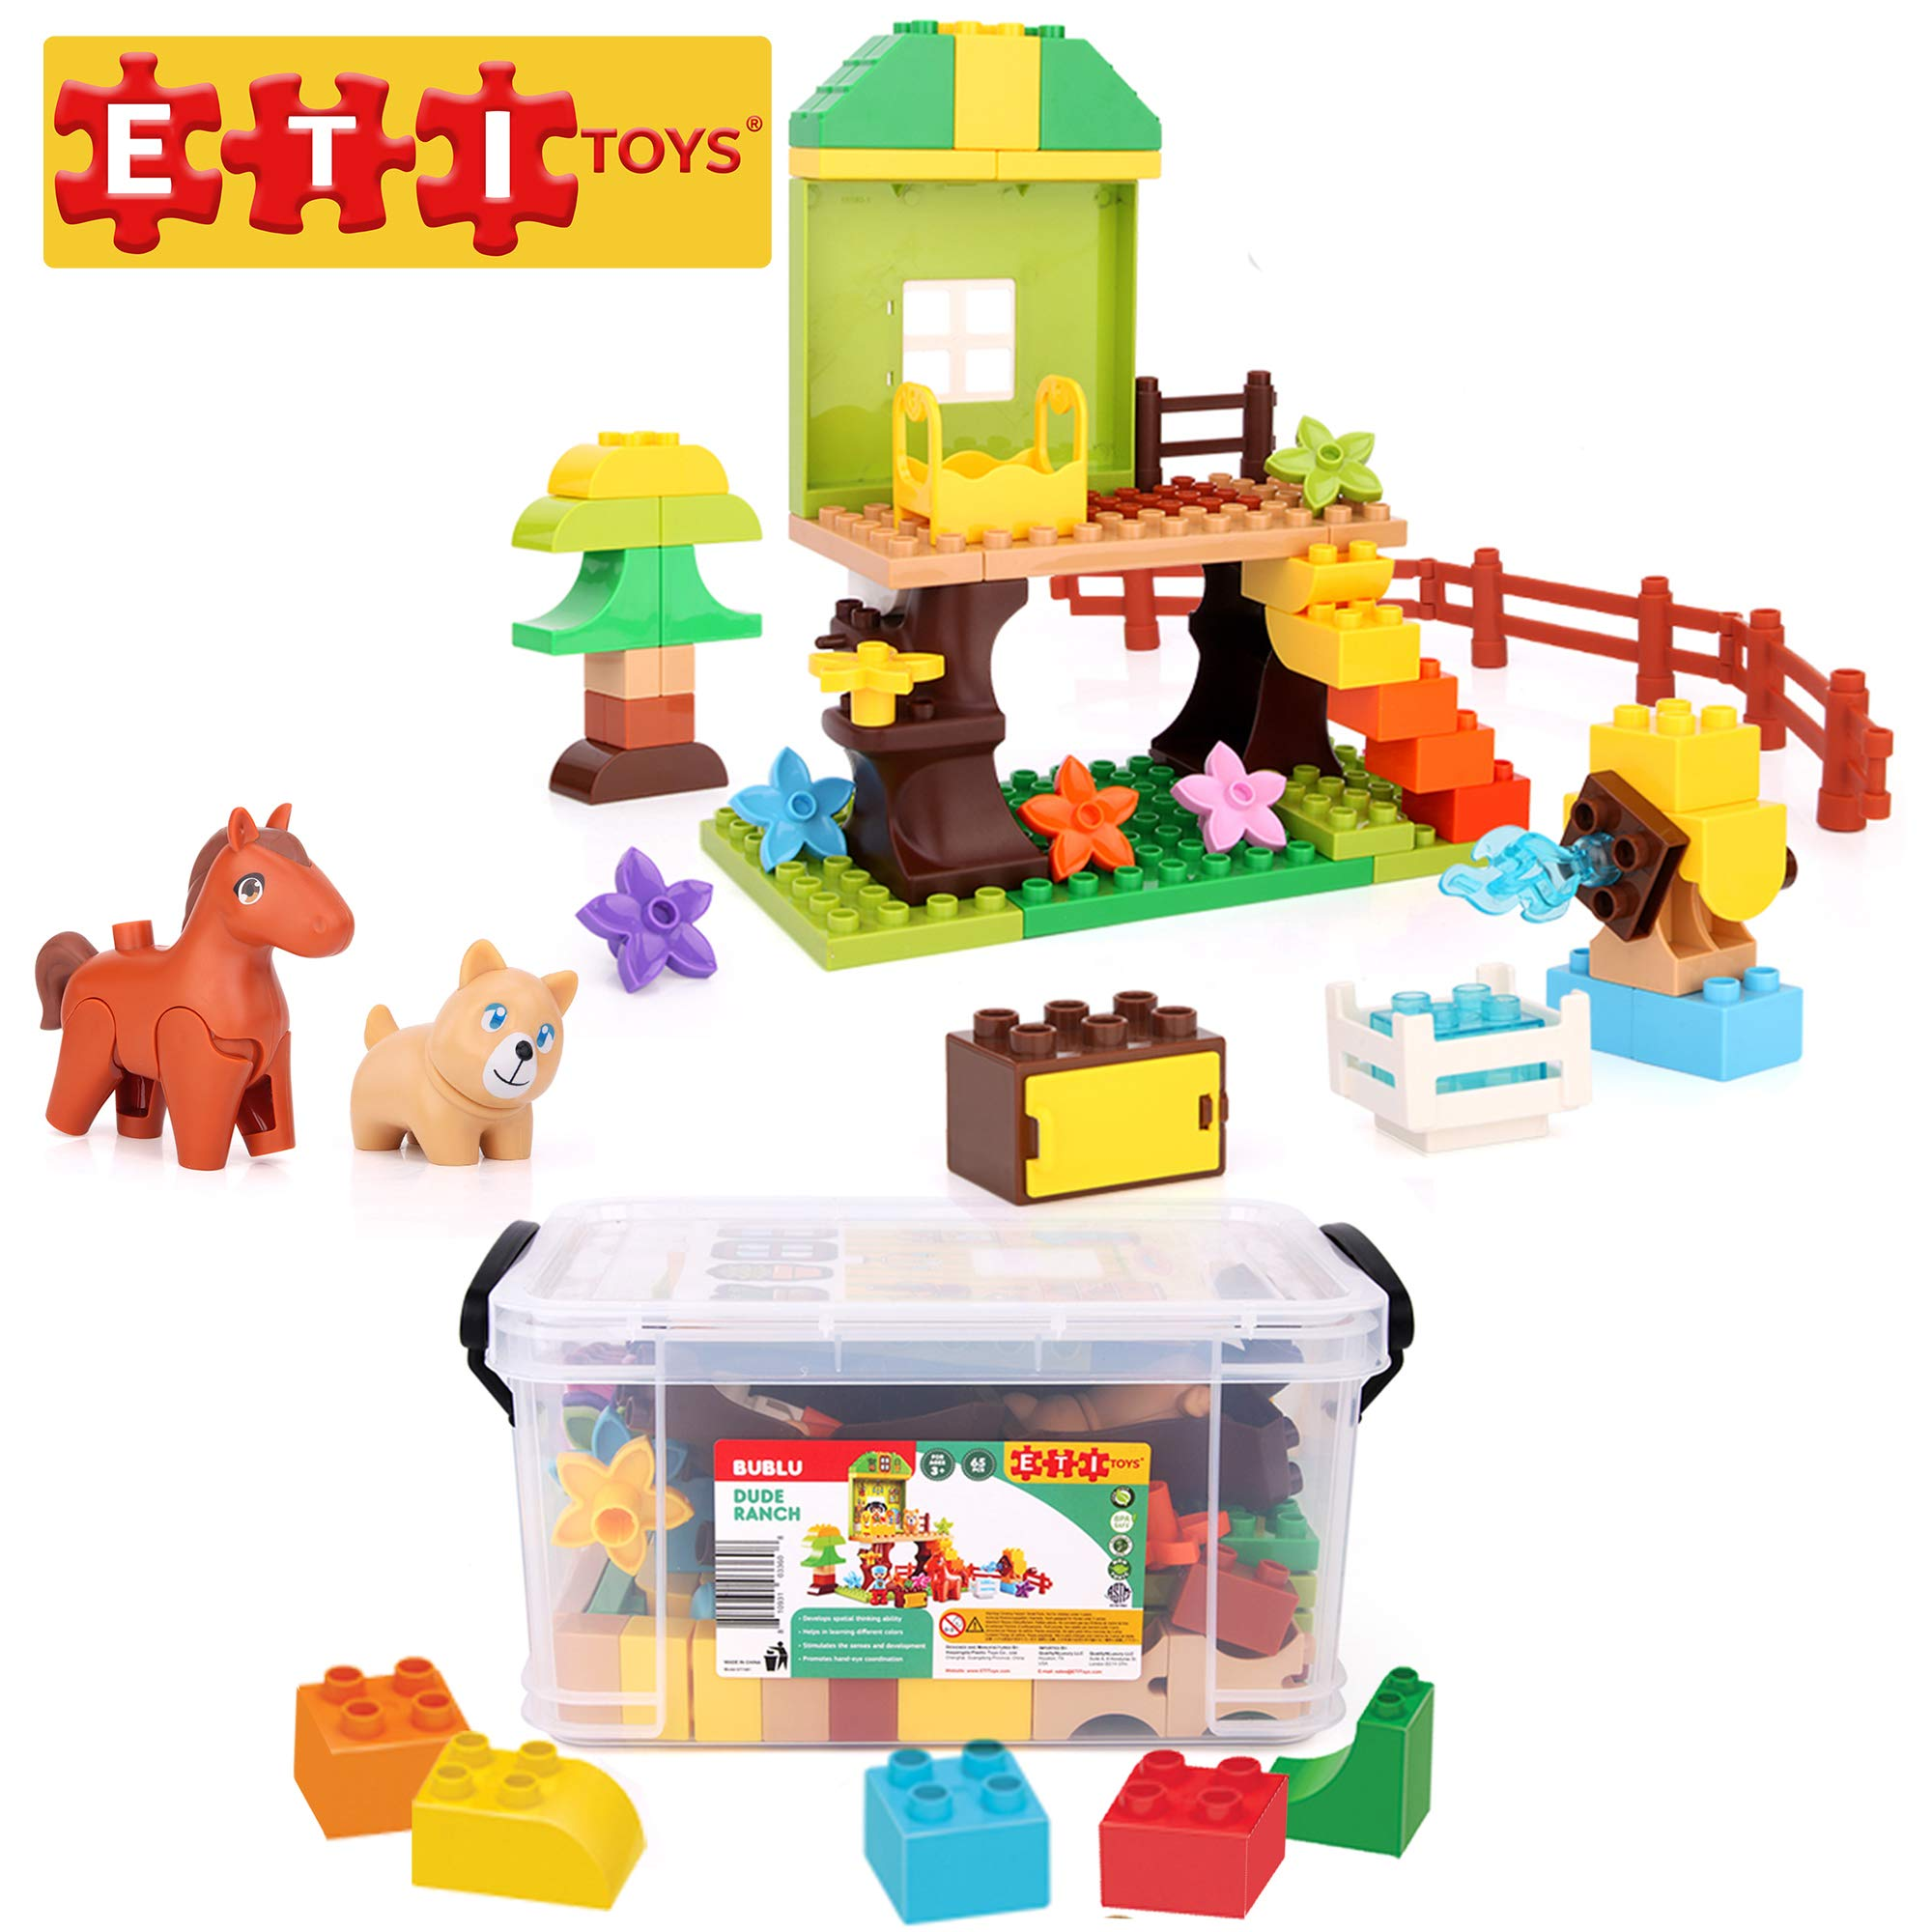 ETI Toys, 65 Piece Bublu Dude Ranch Building Blocks. Build Horse Ranch, Tree House, Flower Garden. 100 Percent Safe, Fun, Creative Skills Development. Toy Gift for 3, 4, 5 Year Old Boys and Girls